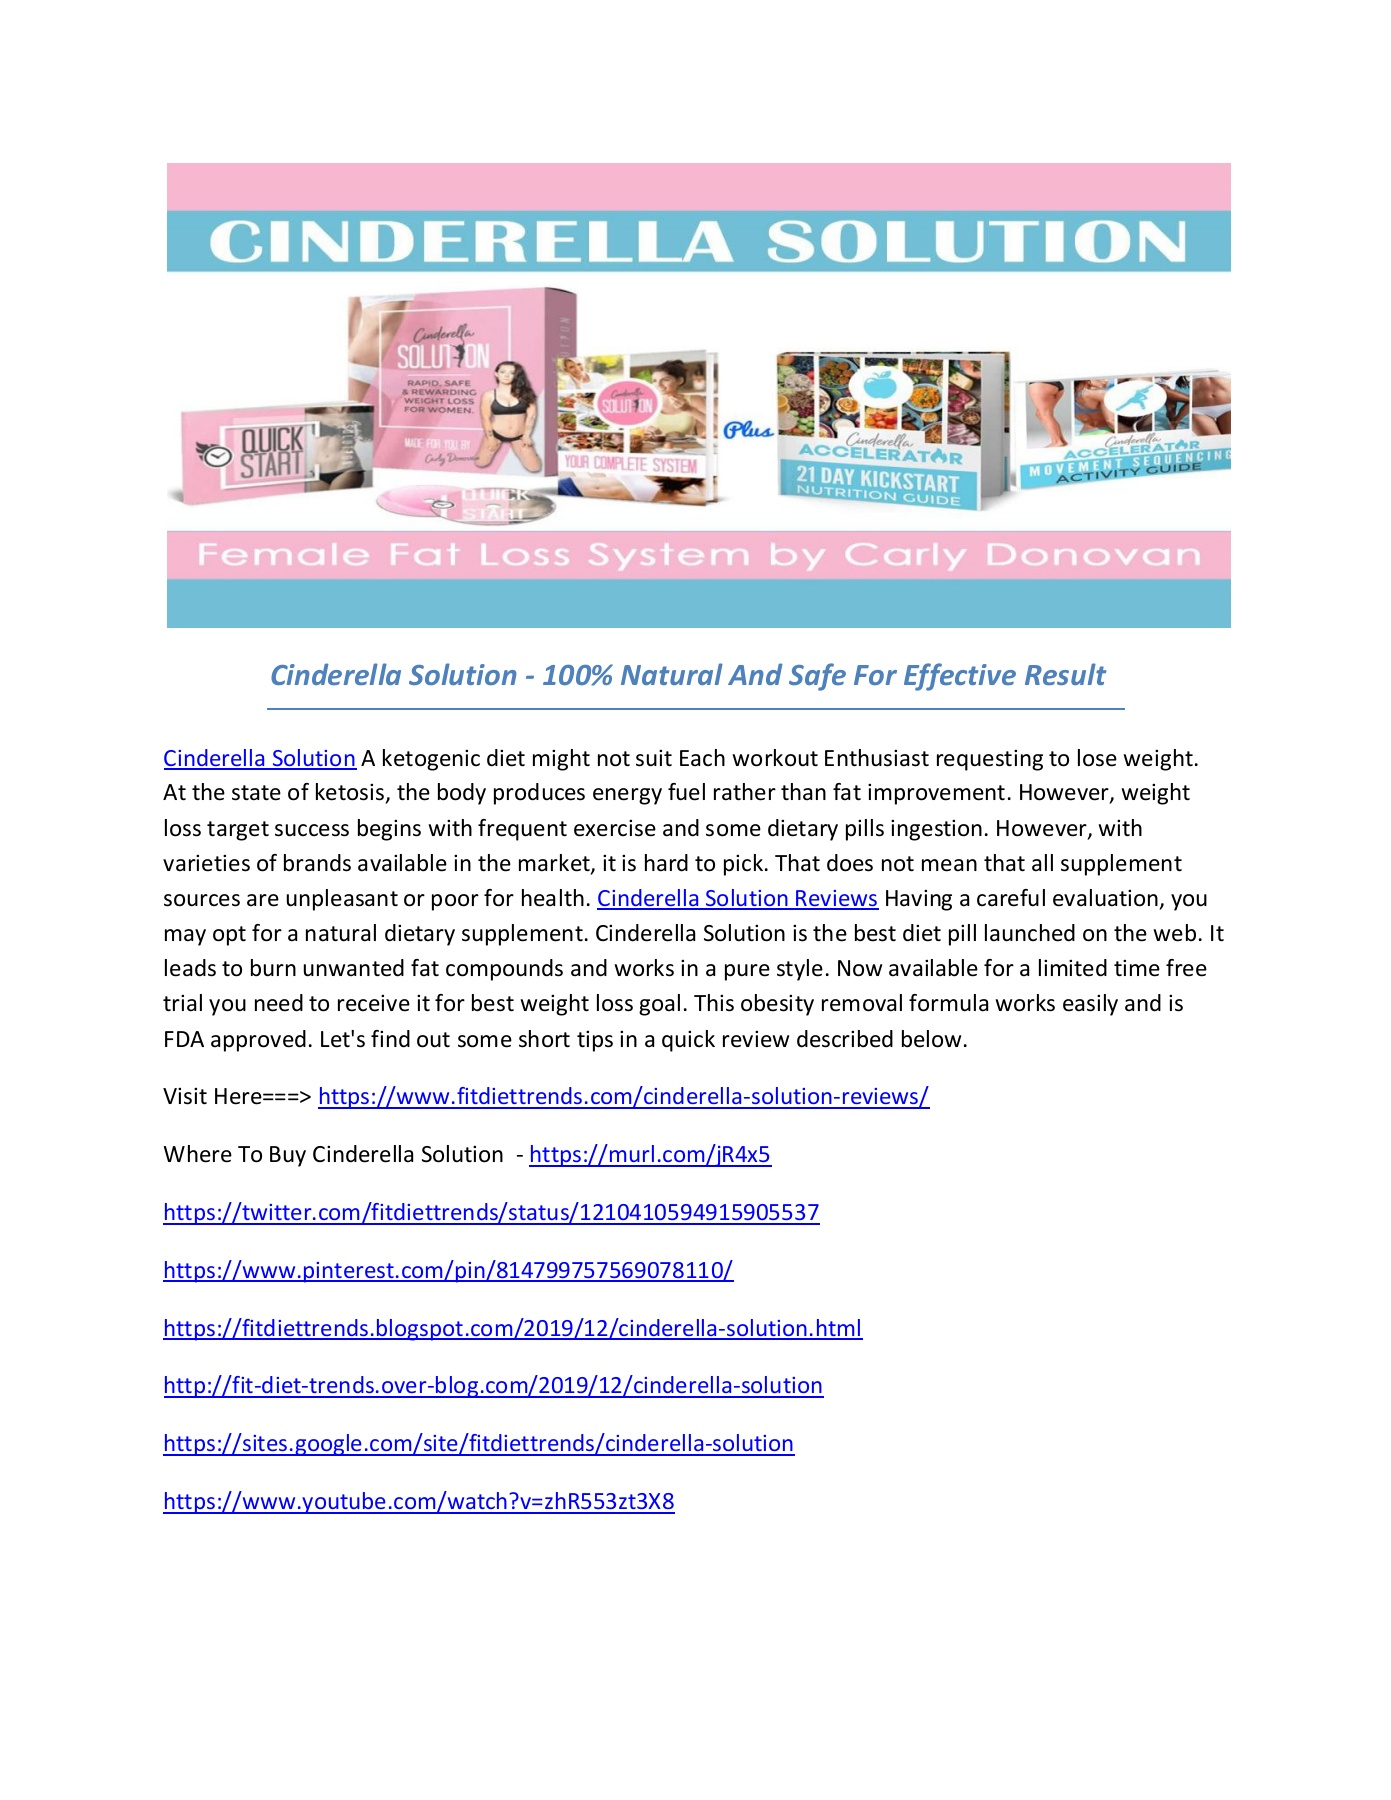 New Price Cinderella Solution